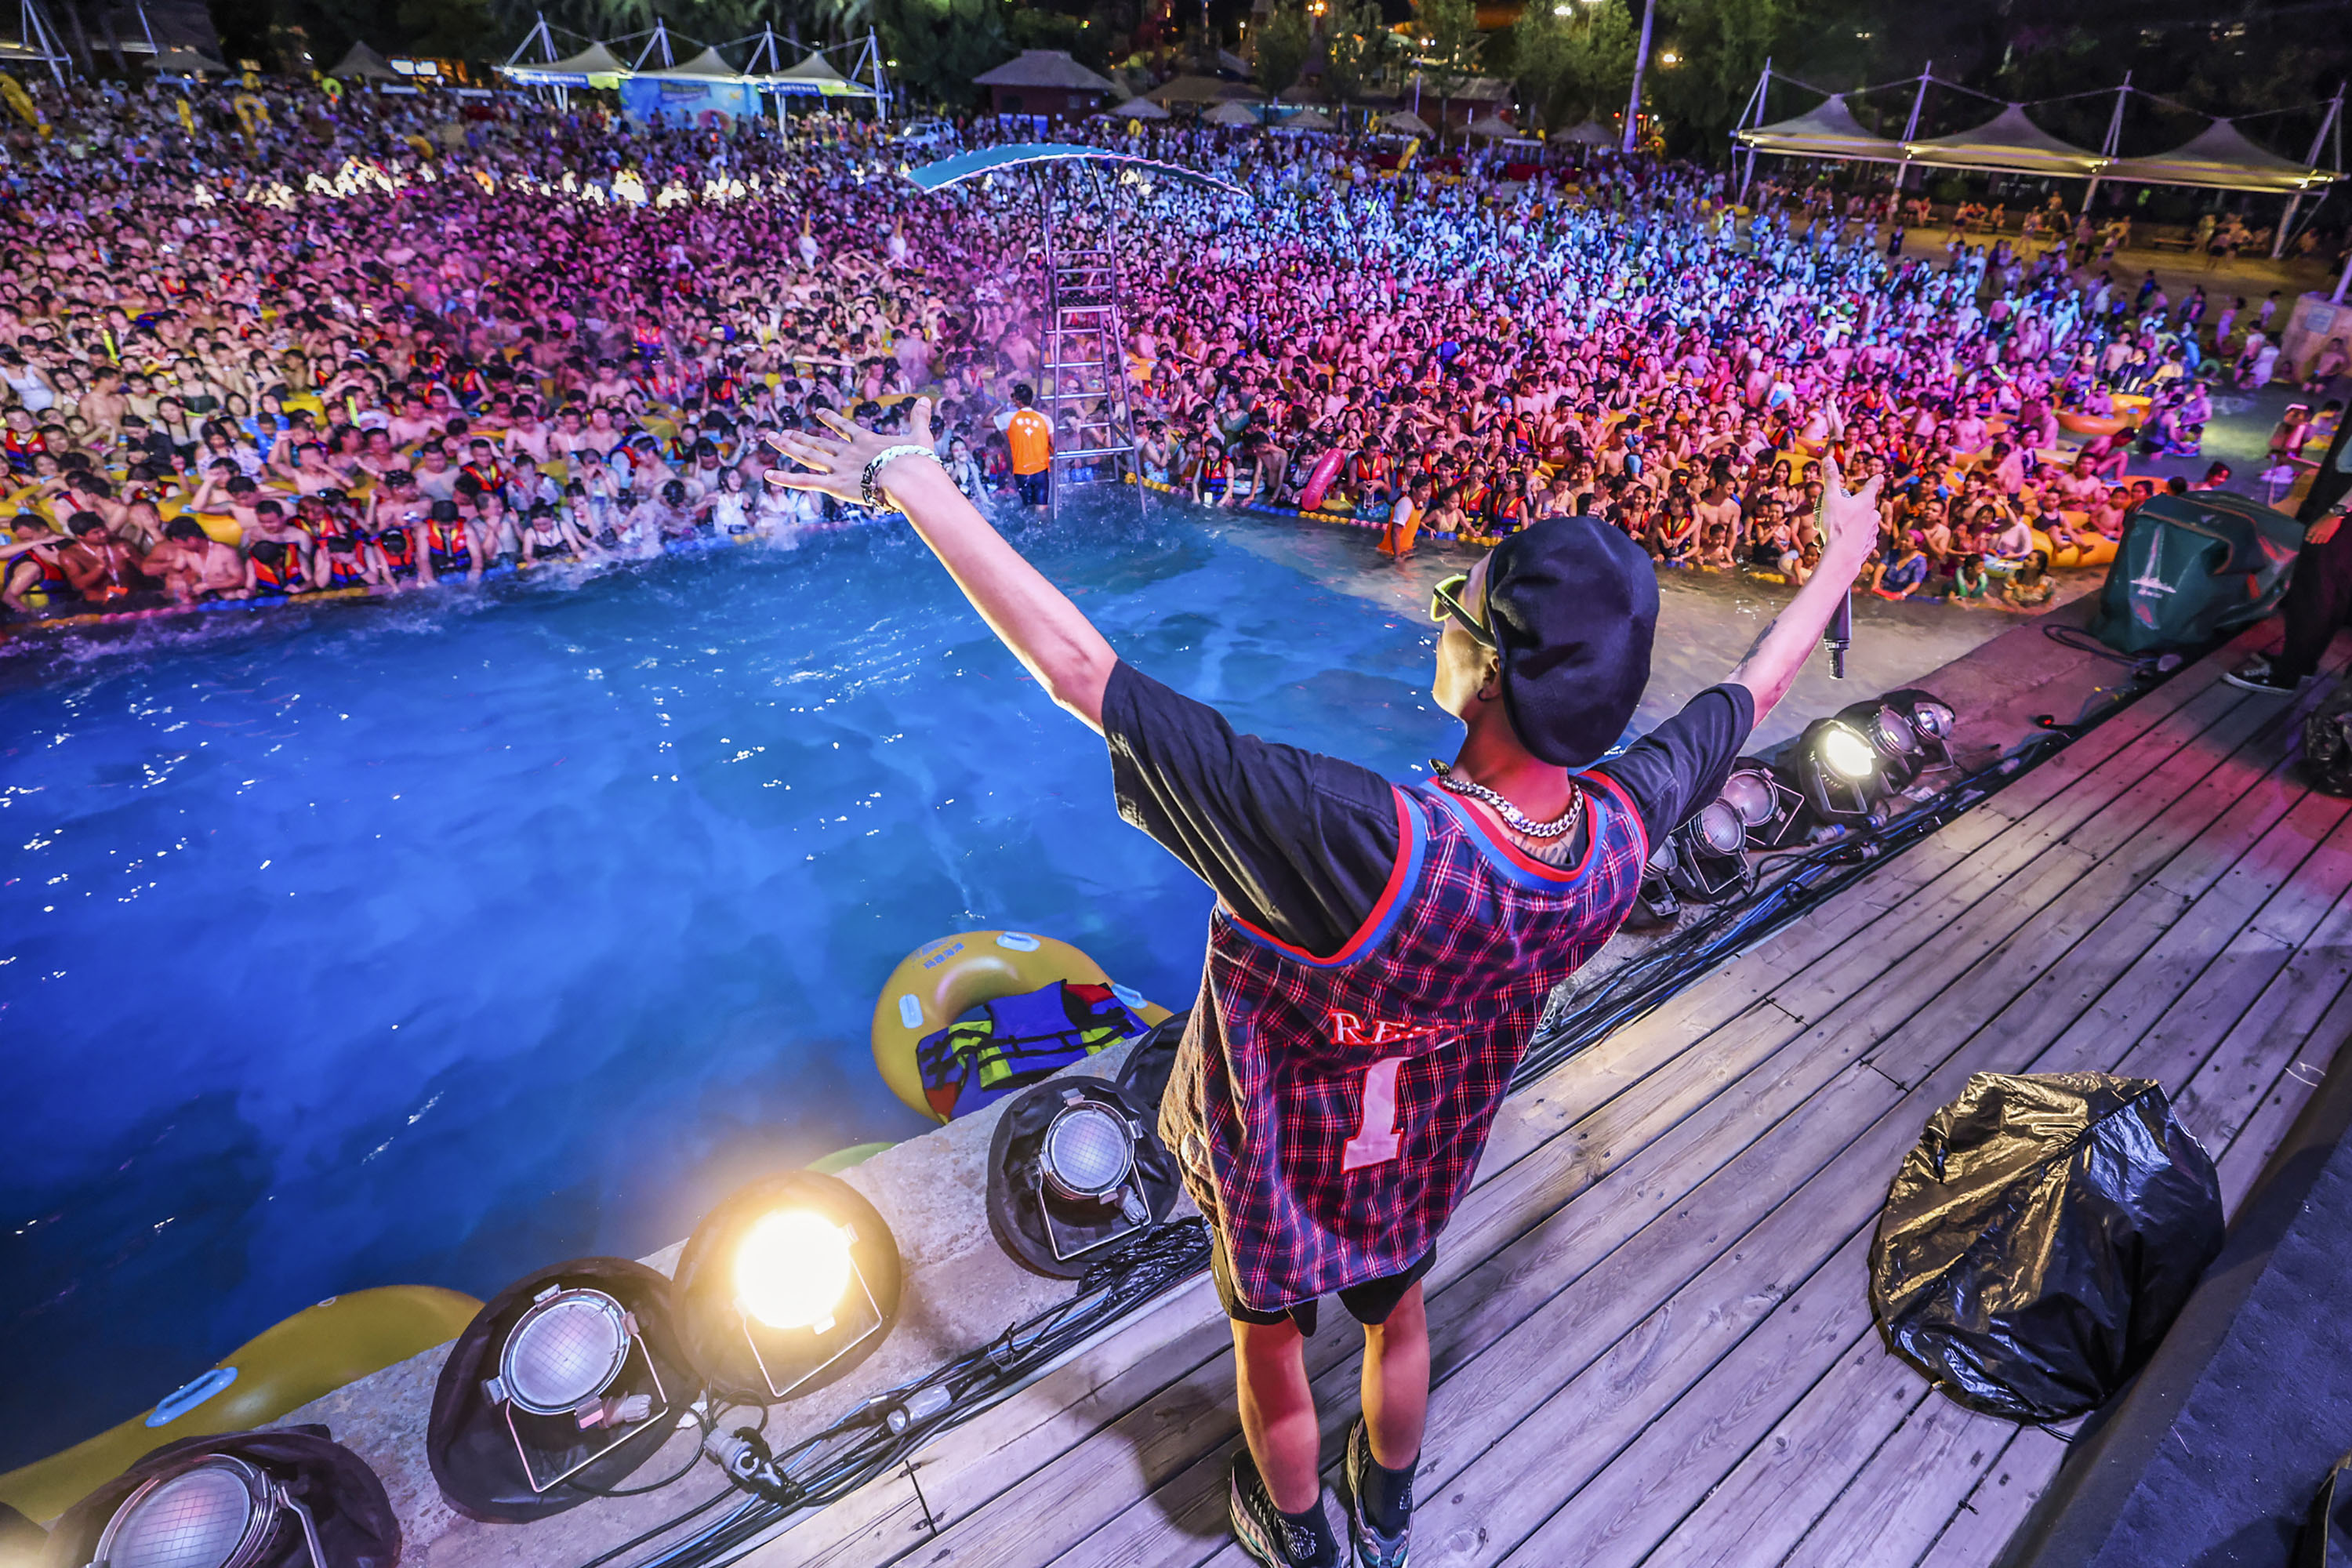 People watch a performance at a water park in Wuhan, China, on August 15.